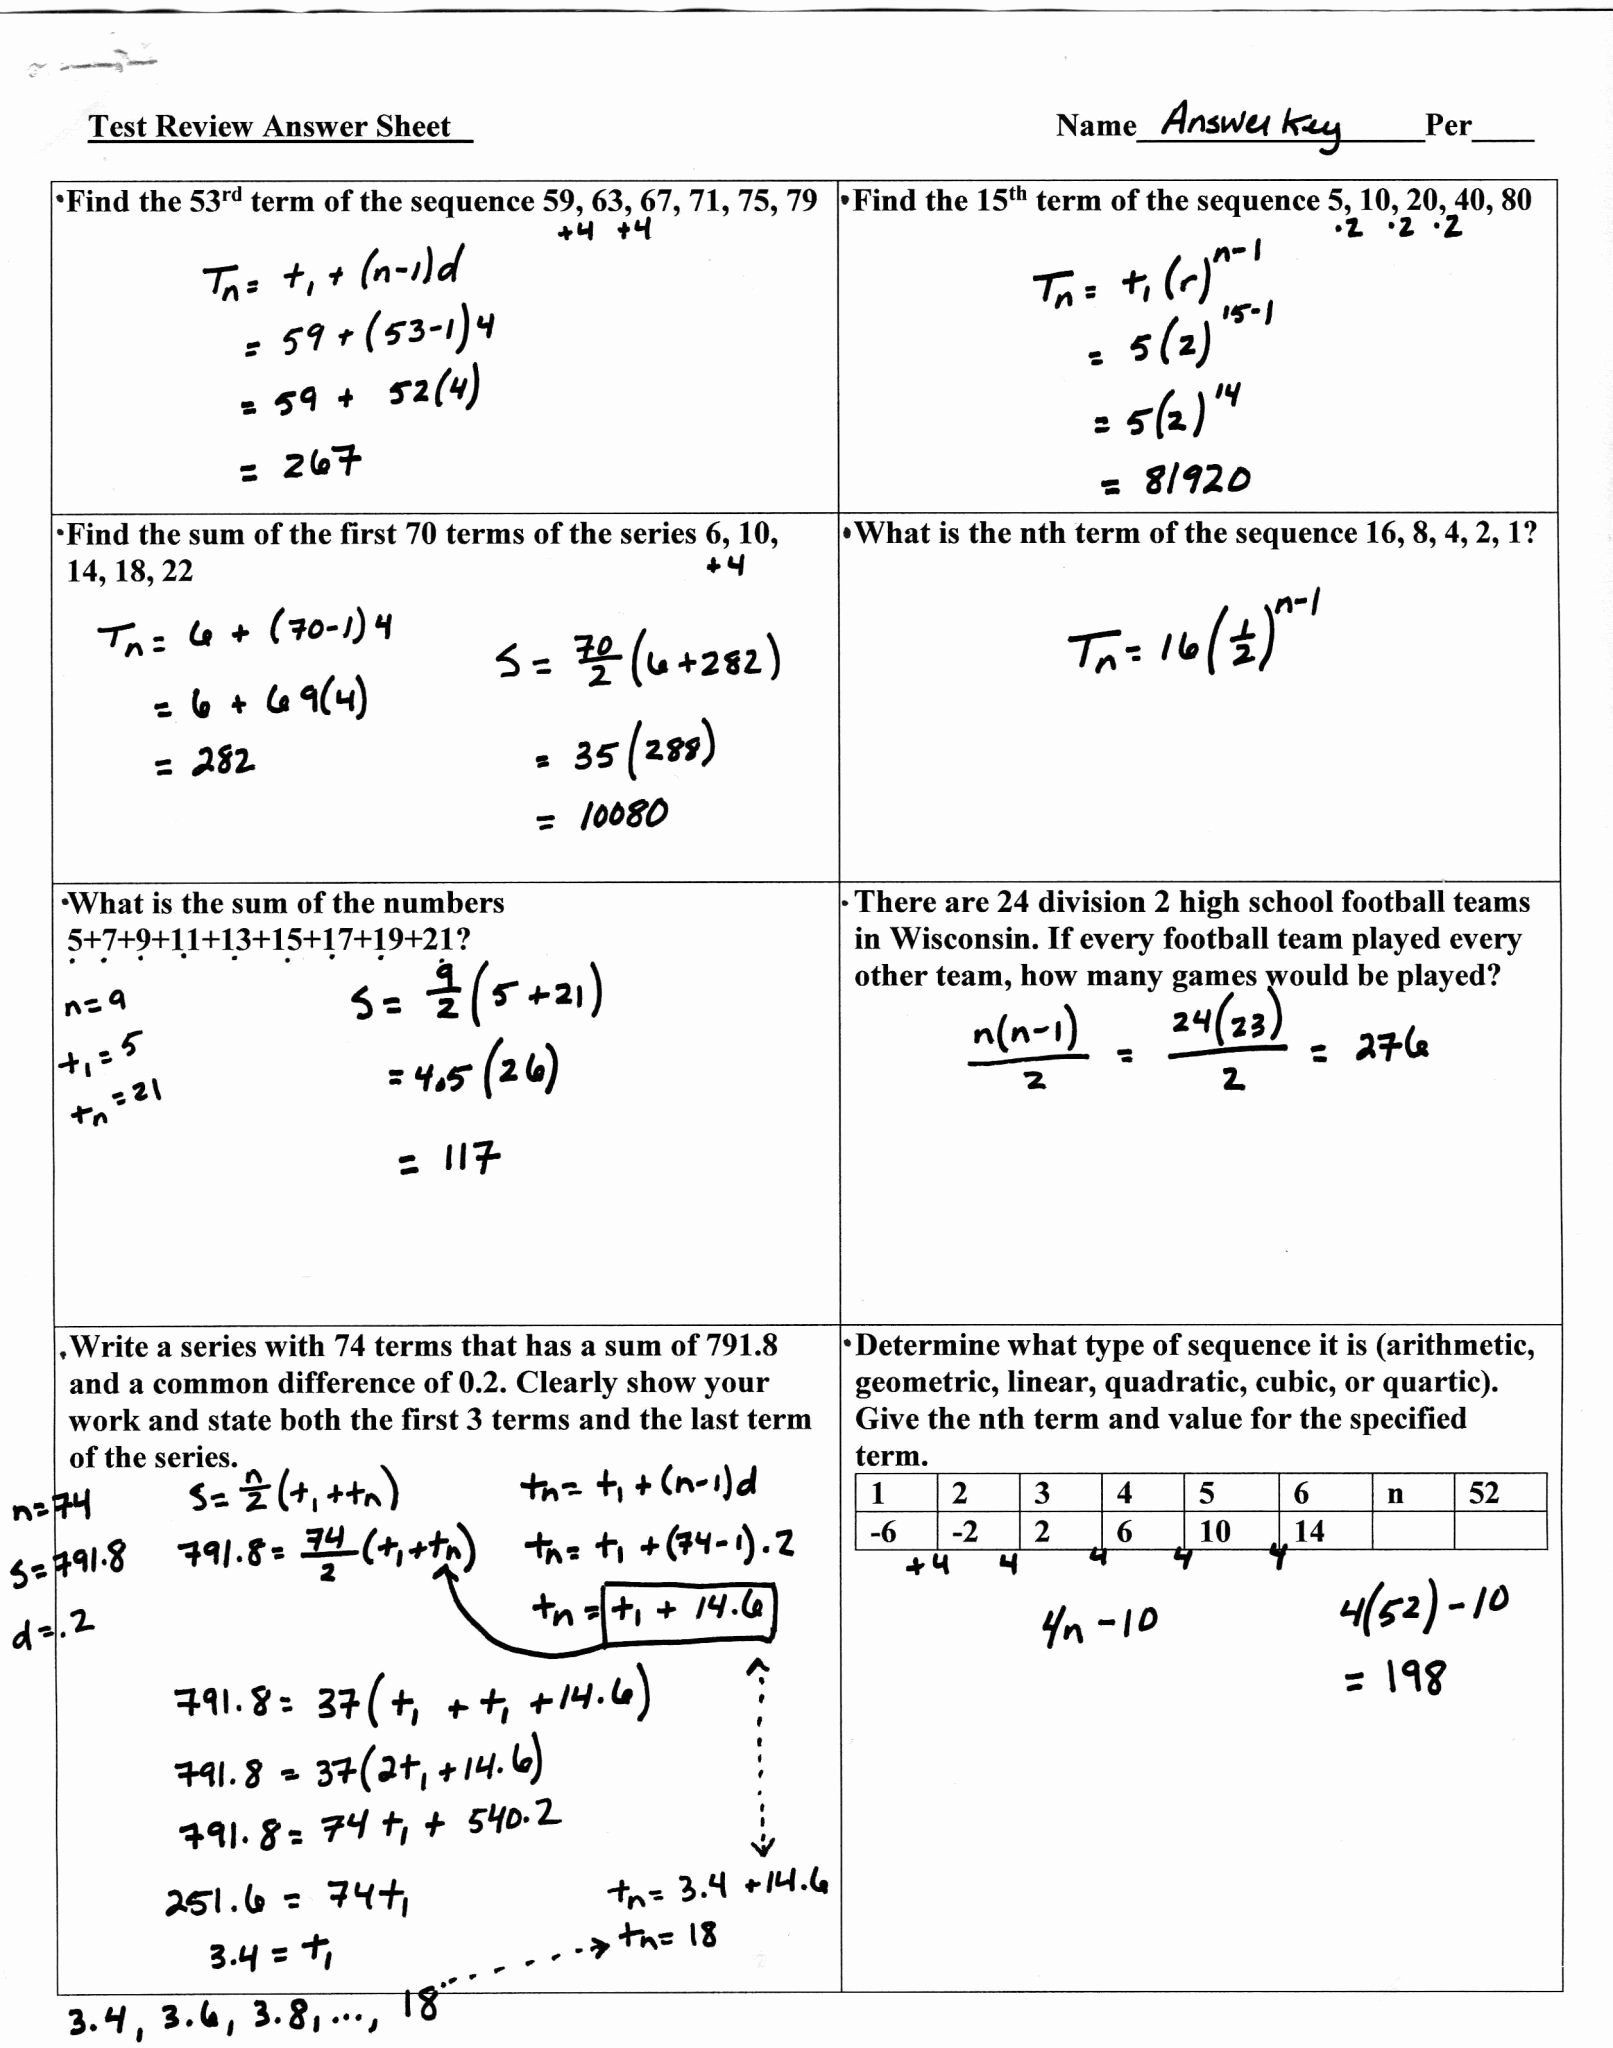 Geometric Sequence Worksheet Answers Pin On Customize Design Worksheet Line